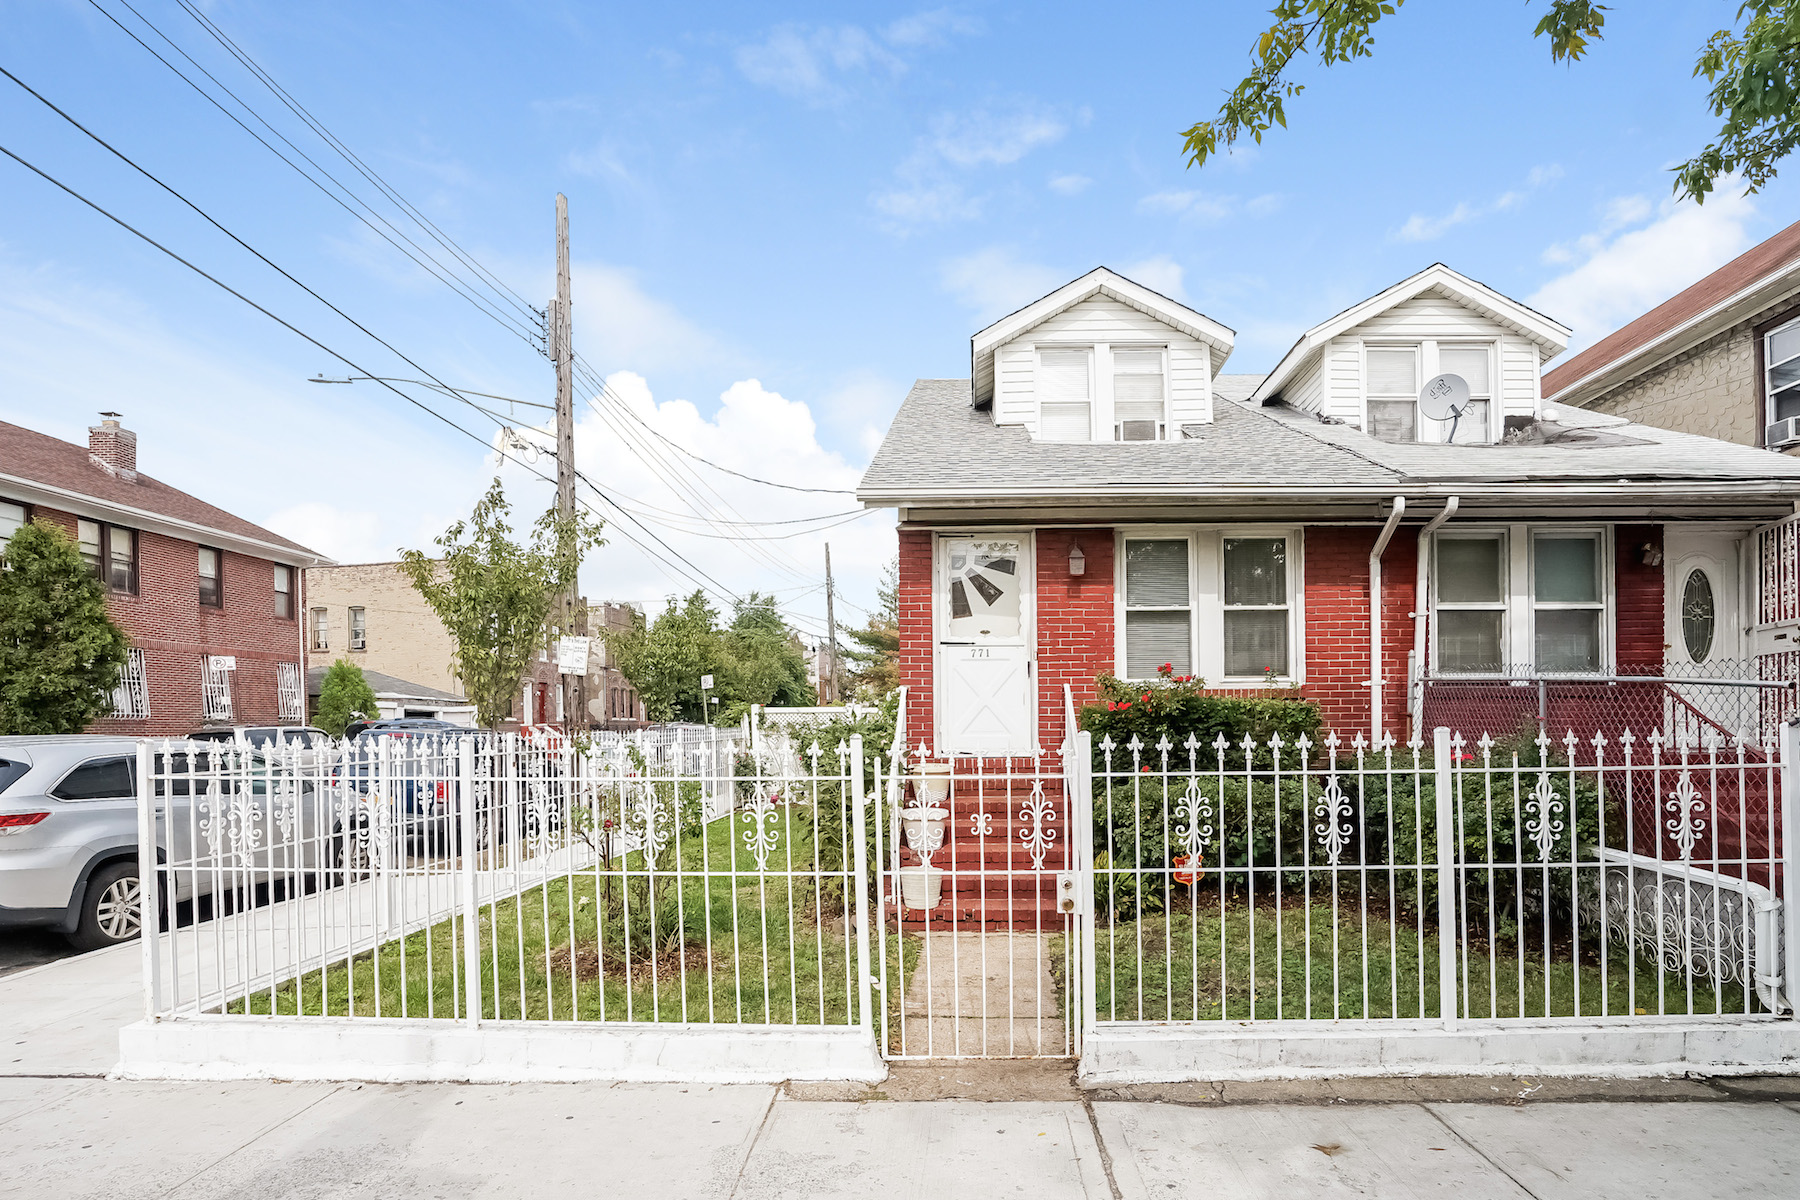 Single Family Home for Sale at 771 Linden Boulevard Semi-Detached Home in North East Flatbush 771 Linden Blvd Brooklyn, New York 11203 United States